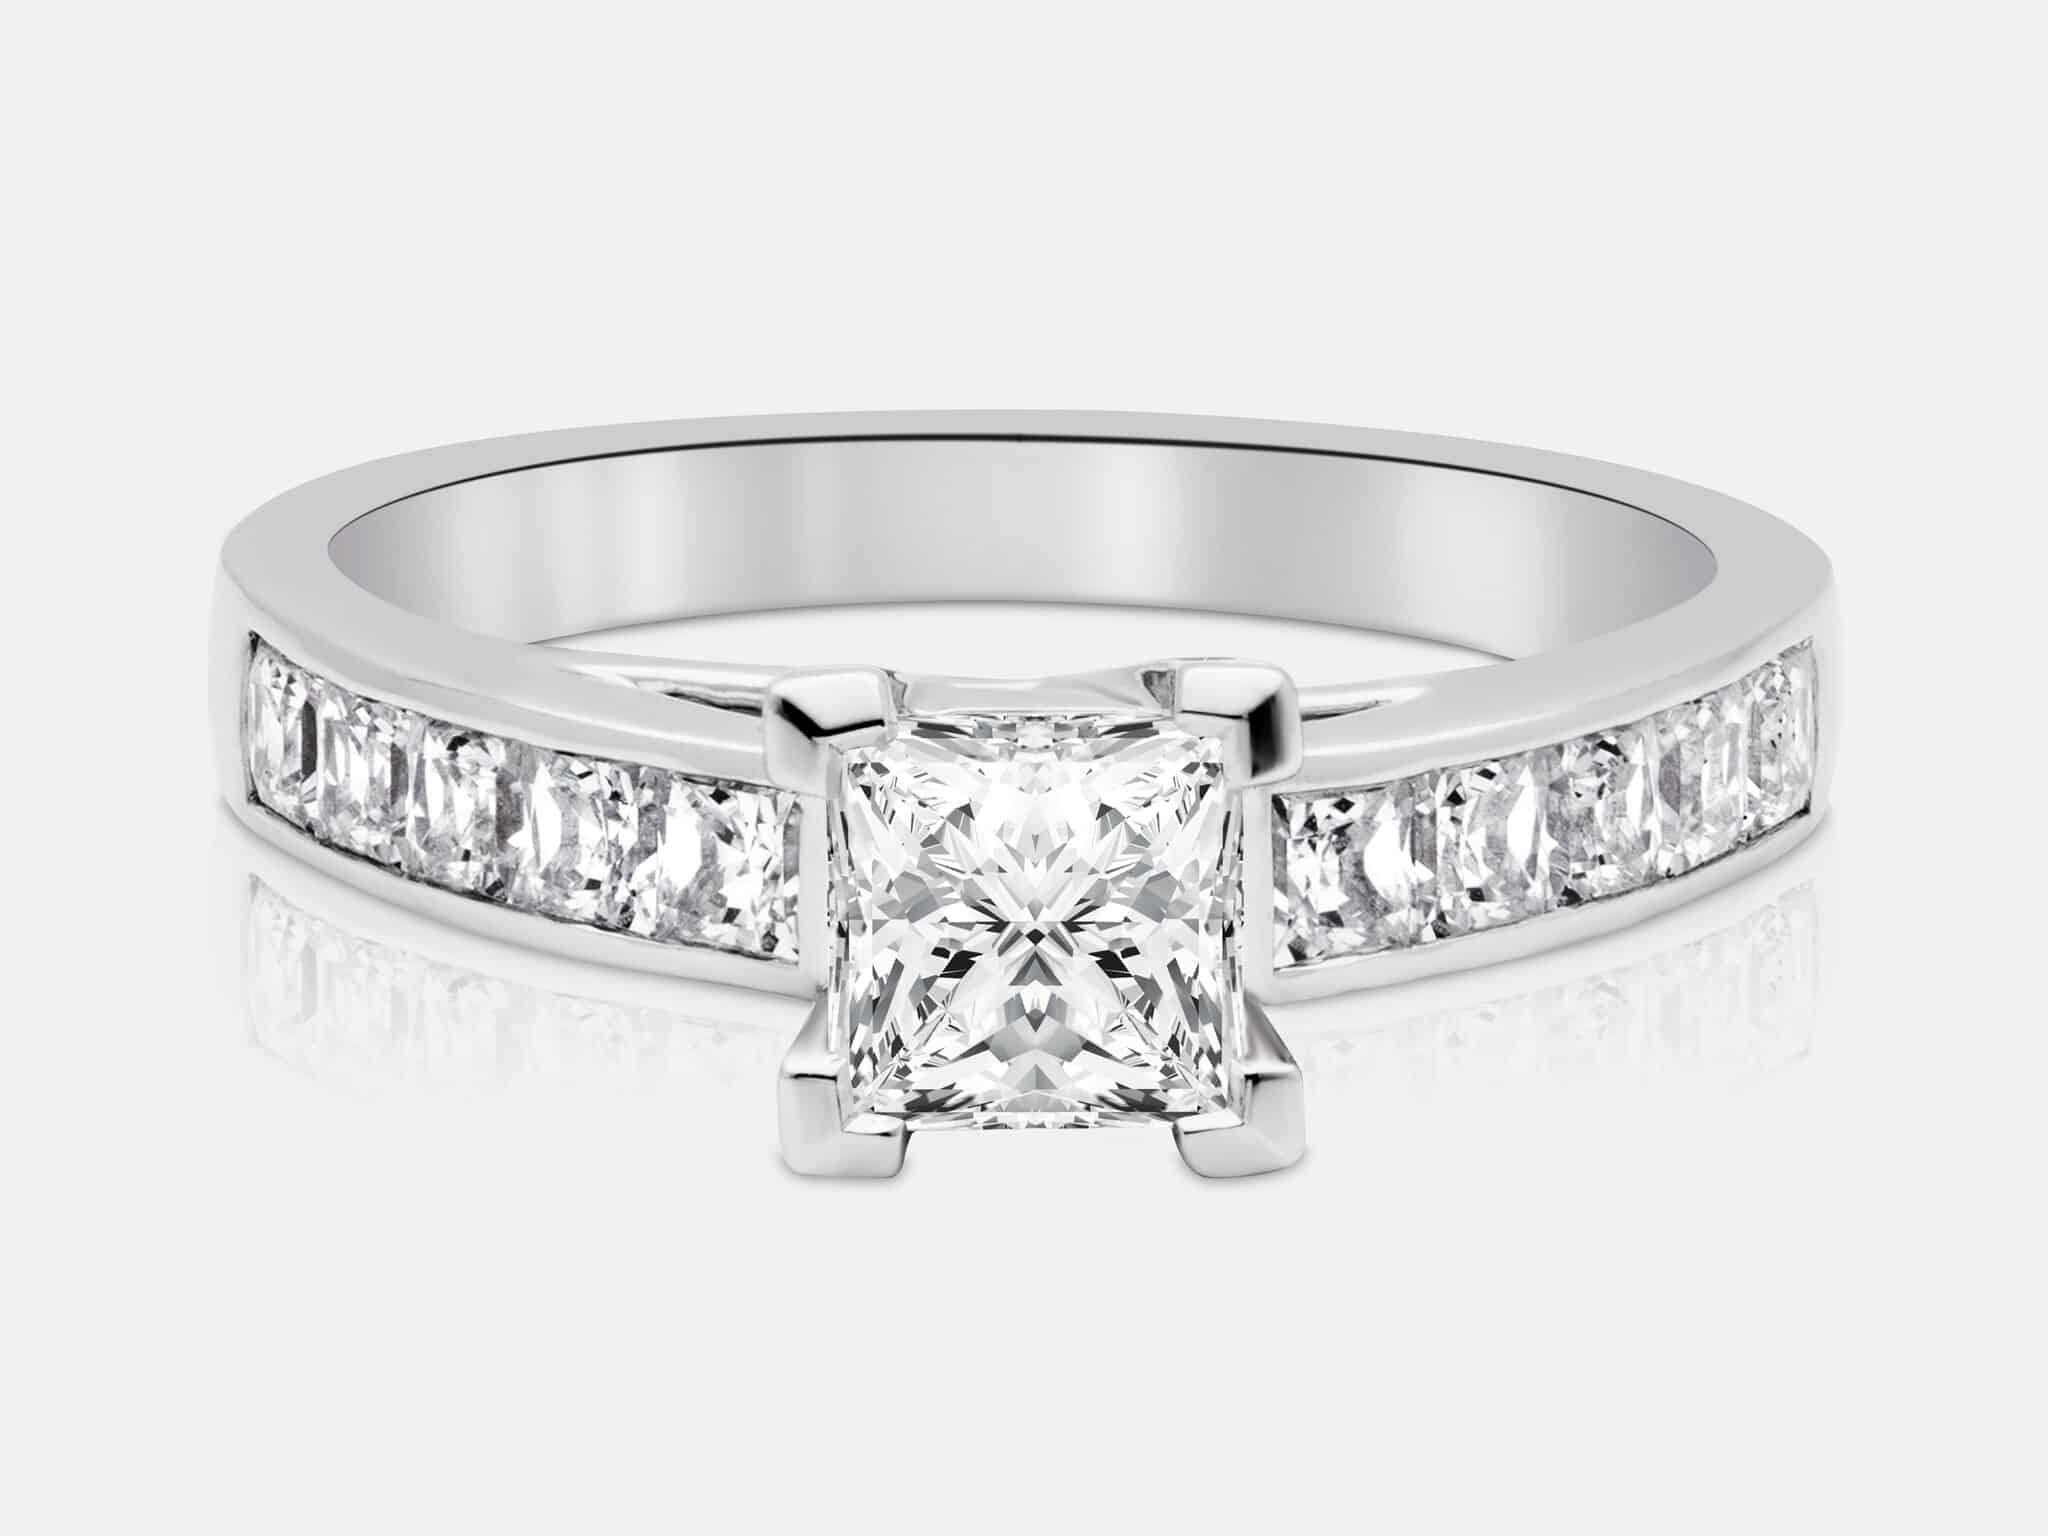 ben diamond jeweler ring jewelry bridge multi bands crossover